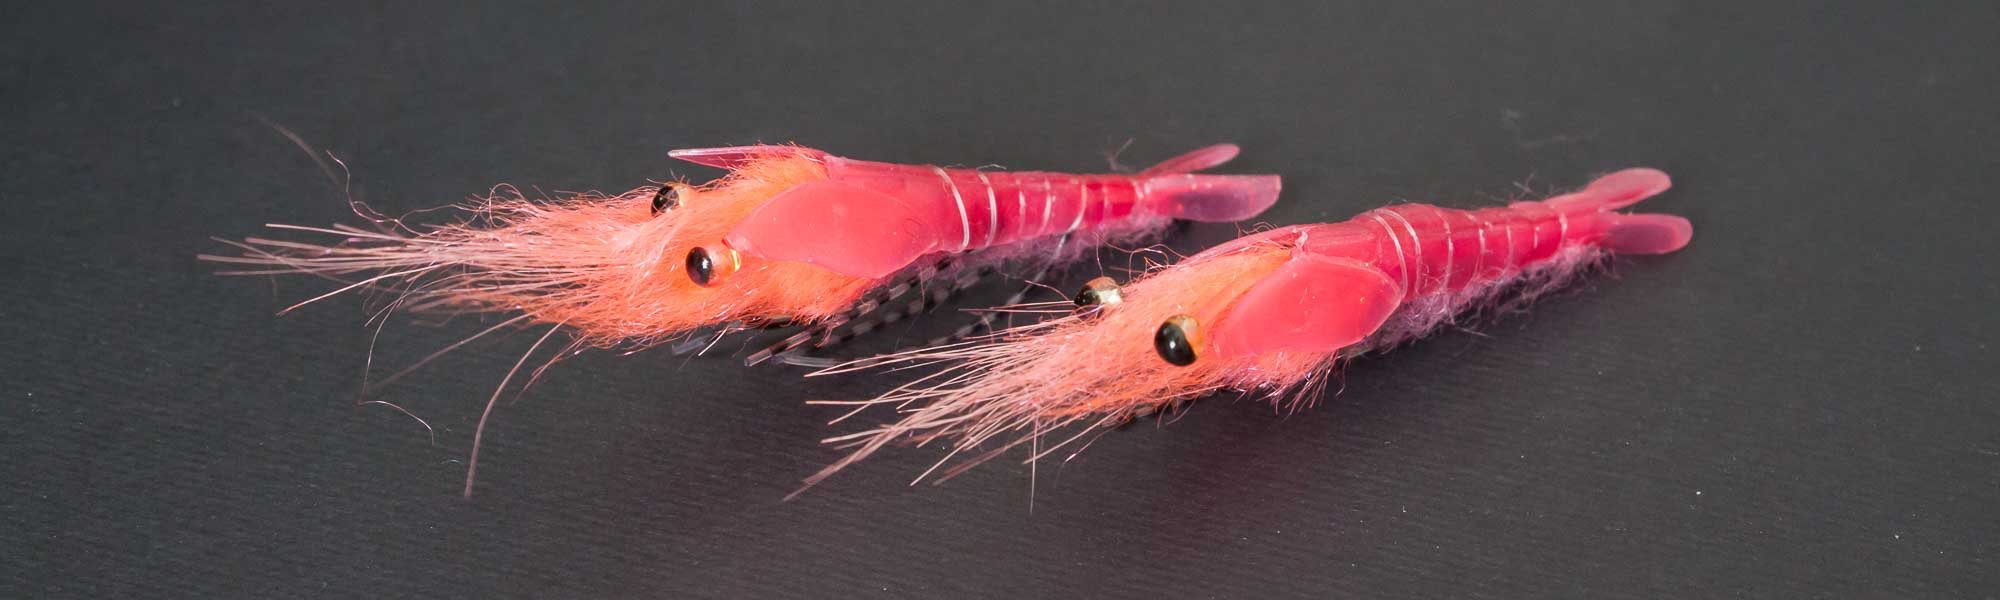 Realistic Pink Shrimp Flies